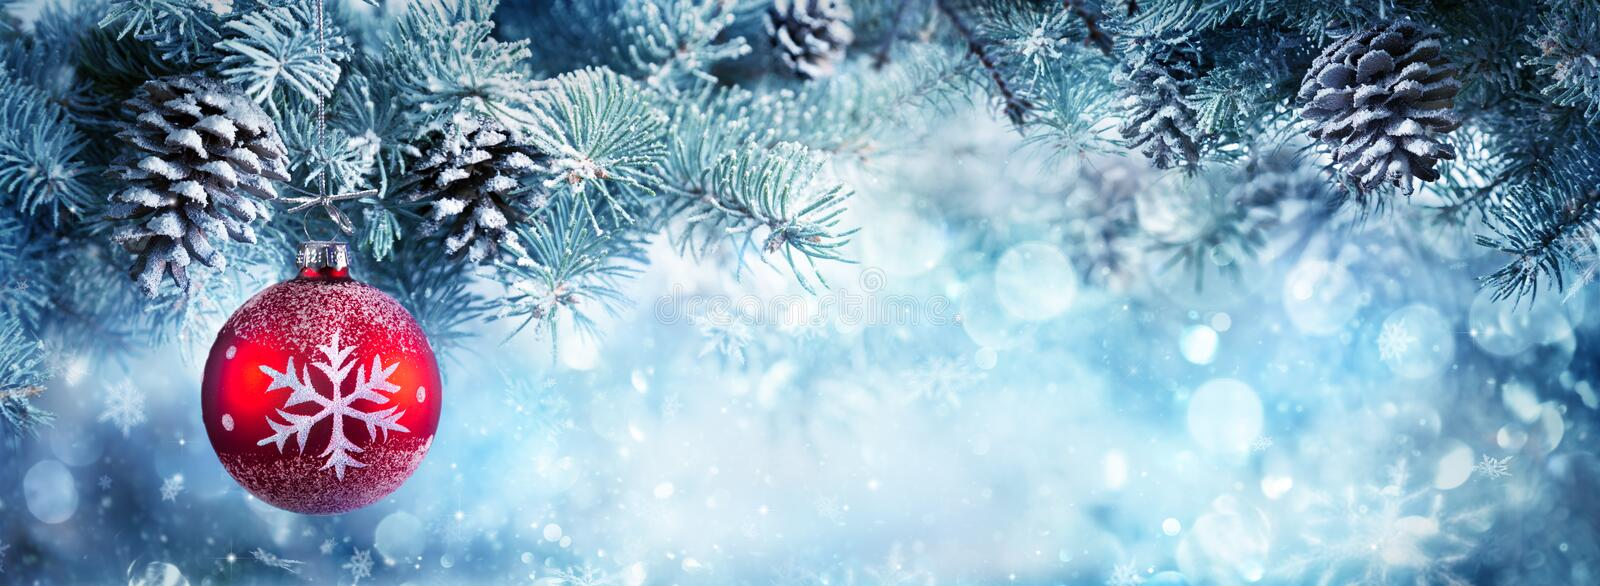 Download Christmas Decoration For Banner Stock Image - Image: 62758327